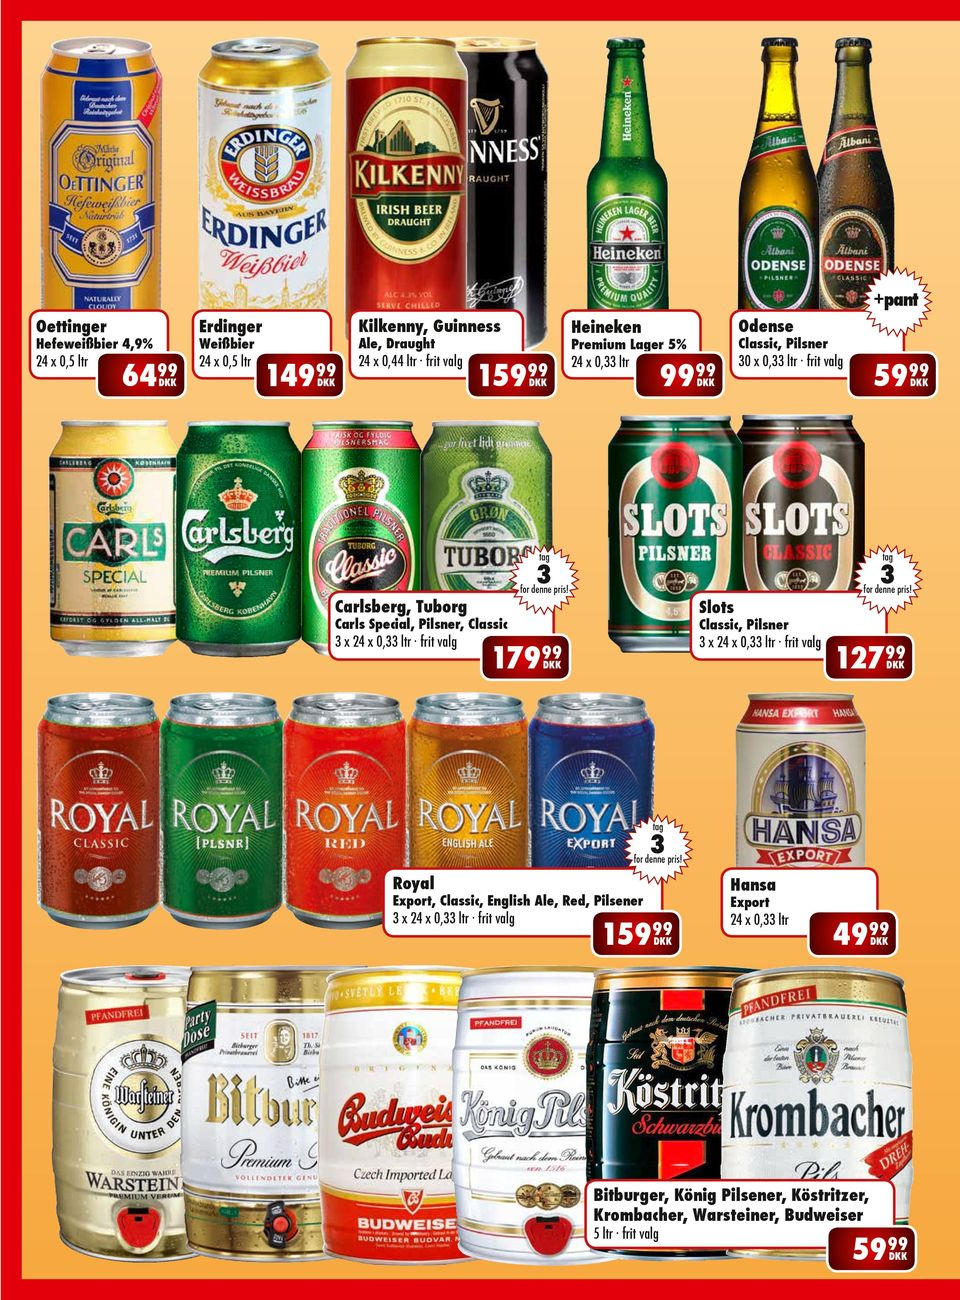 Pilsner, Classic x 24 x 0, ltr frit valg Classic, Pilsner 179 x 24 x 0, ltr frit valg 127 Royal Hansa Export, Classic, English Ale, Red,